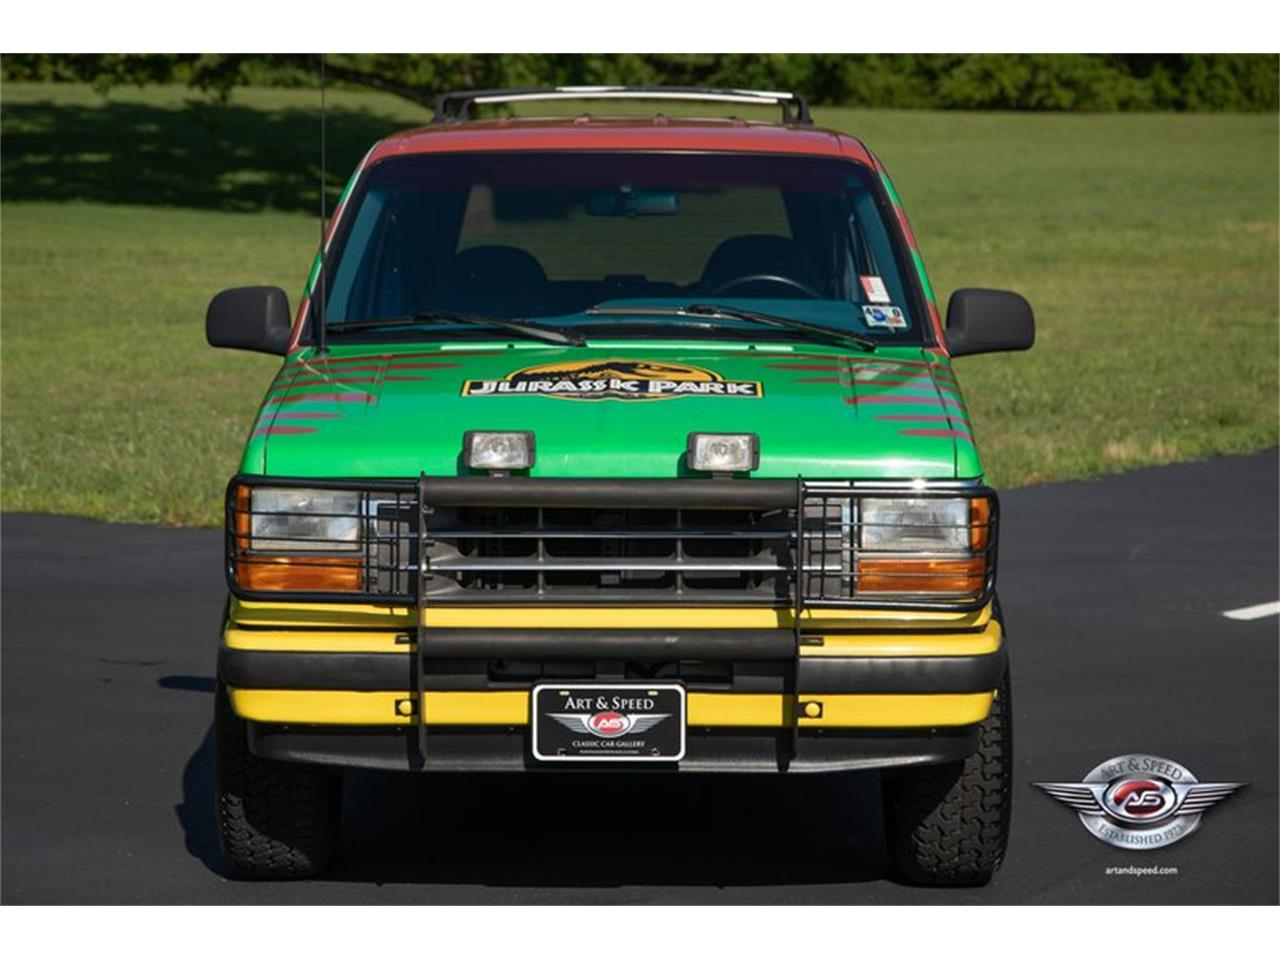 Large Picture of '93 Explorer located in Tennessee - $8,900.00 - NRIV